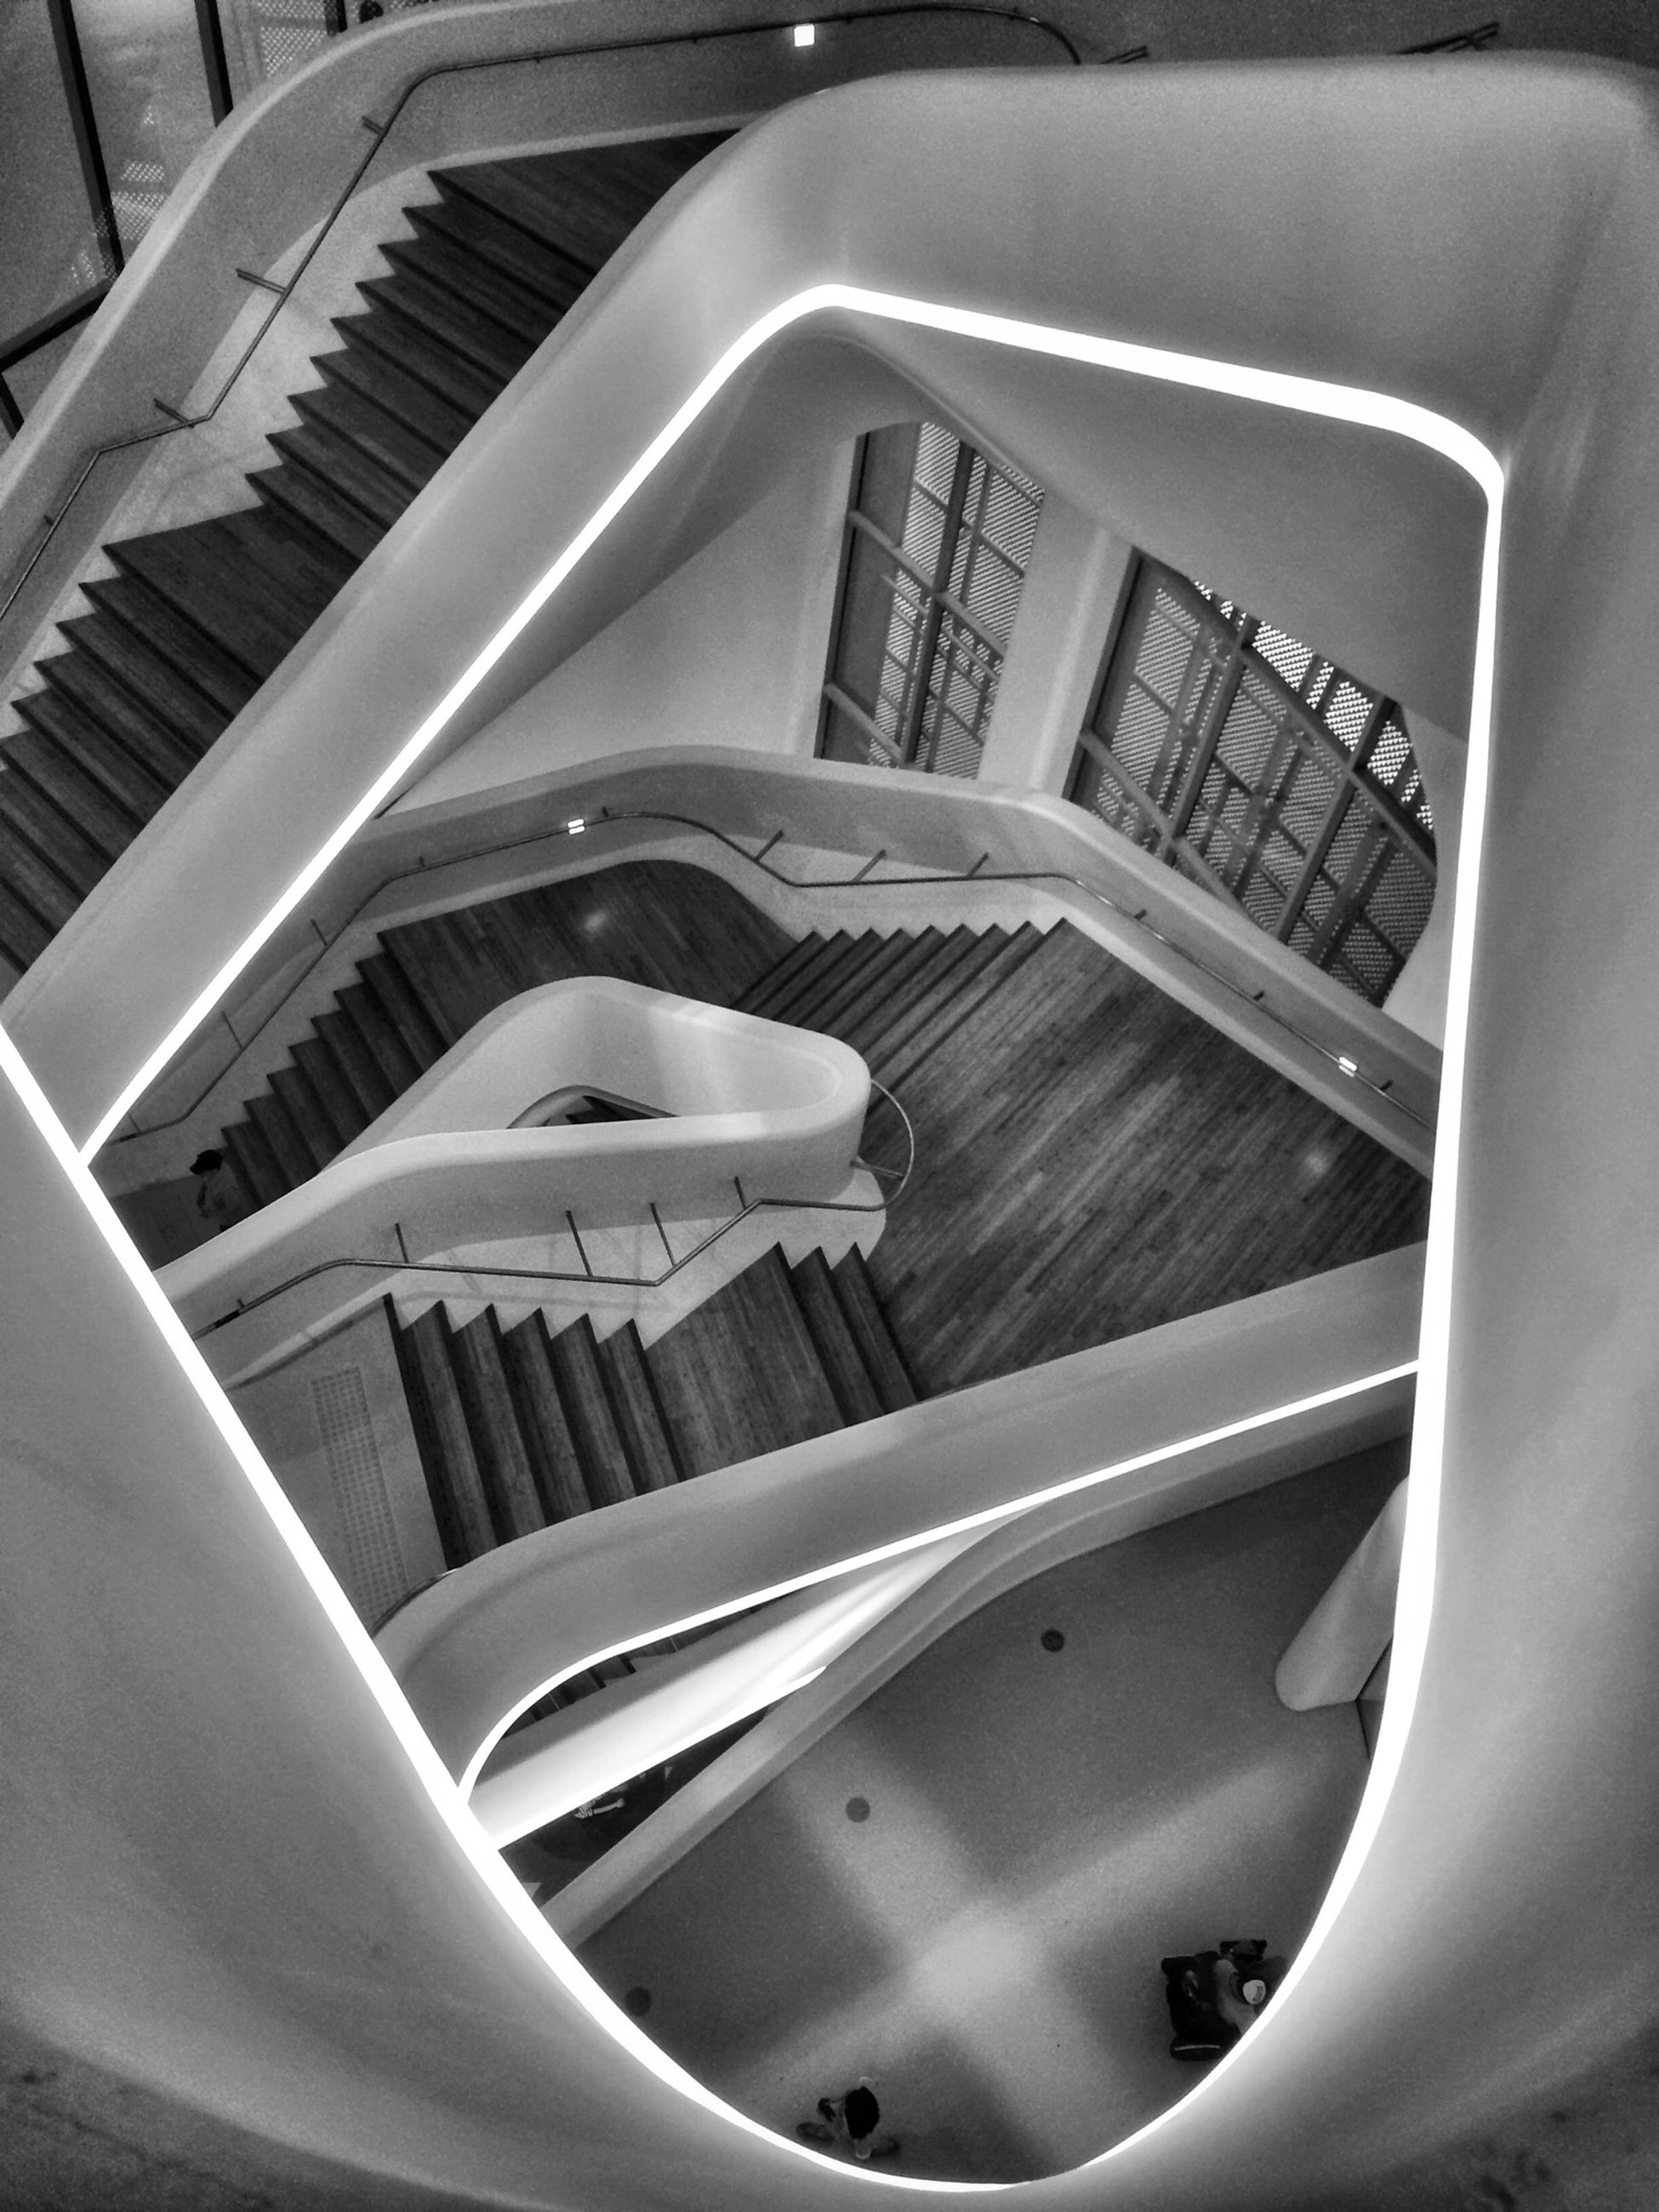 indoors, architecture, steps and staircases, built structure, staircase, railing, high angle view, steps, modern, building, building exterior, spiral staircase, no people, spiral, window, day, low angle view, absence, escalator, reflection